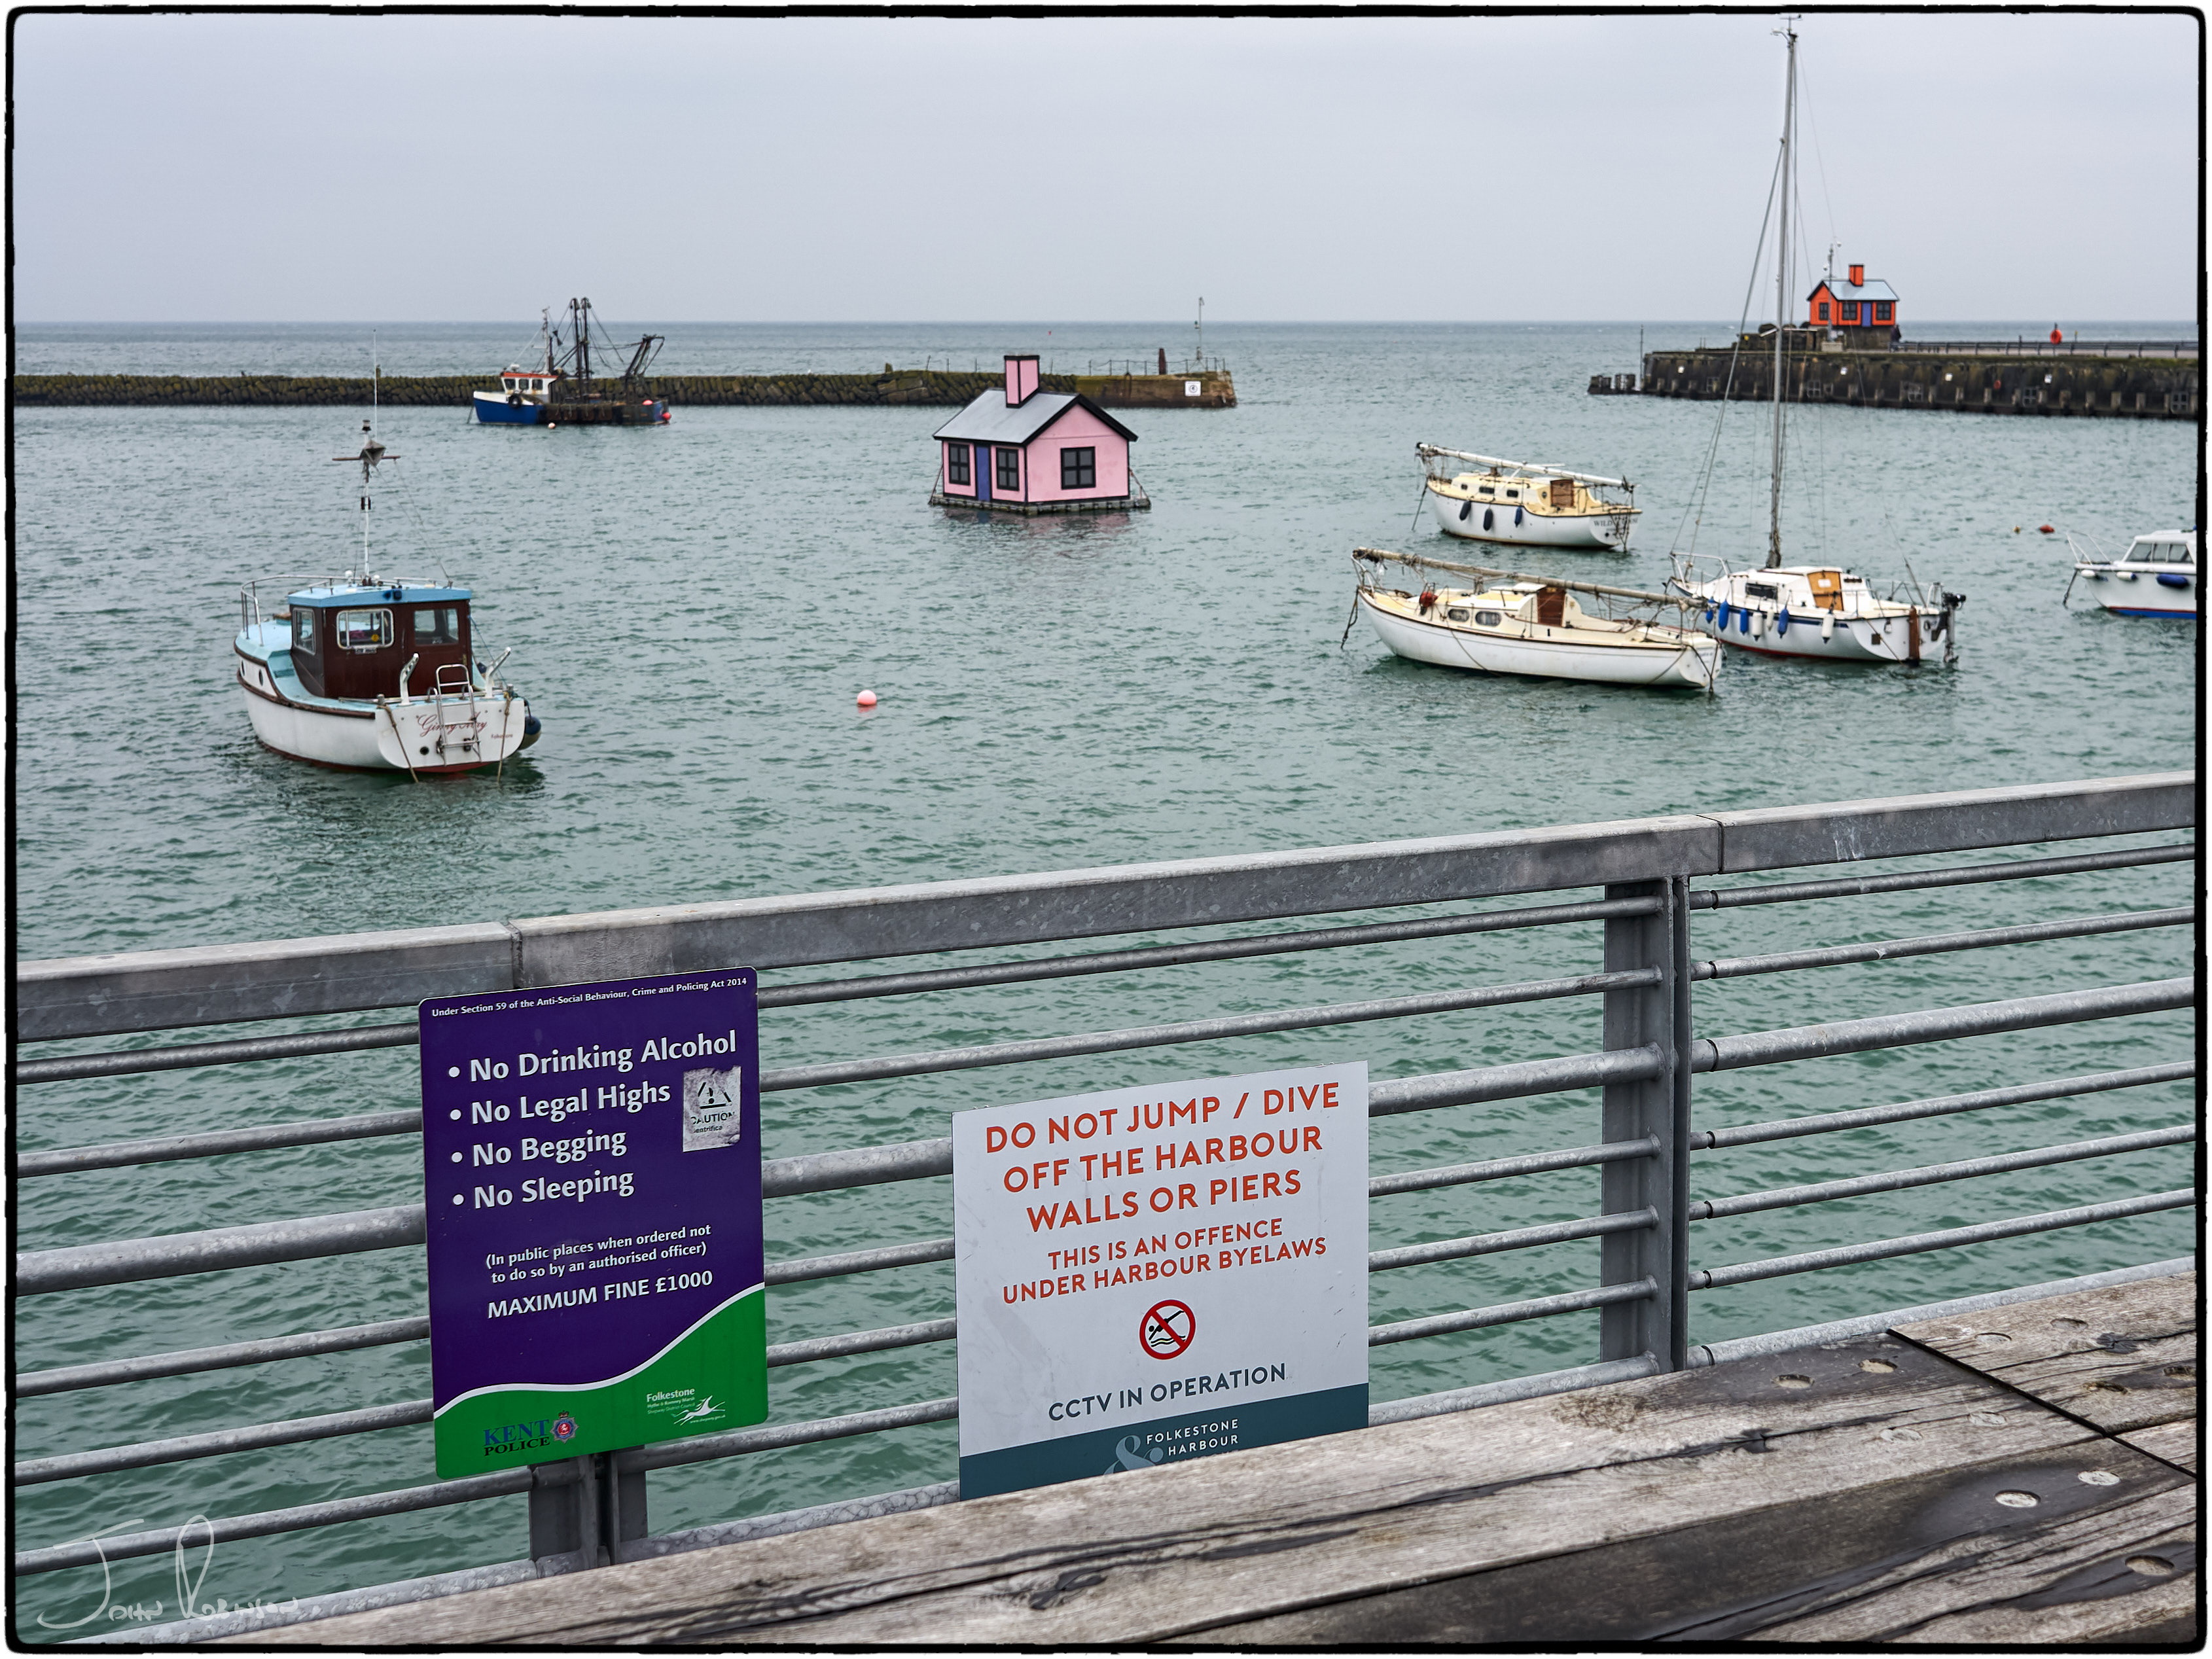 No fun in this harbour